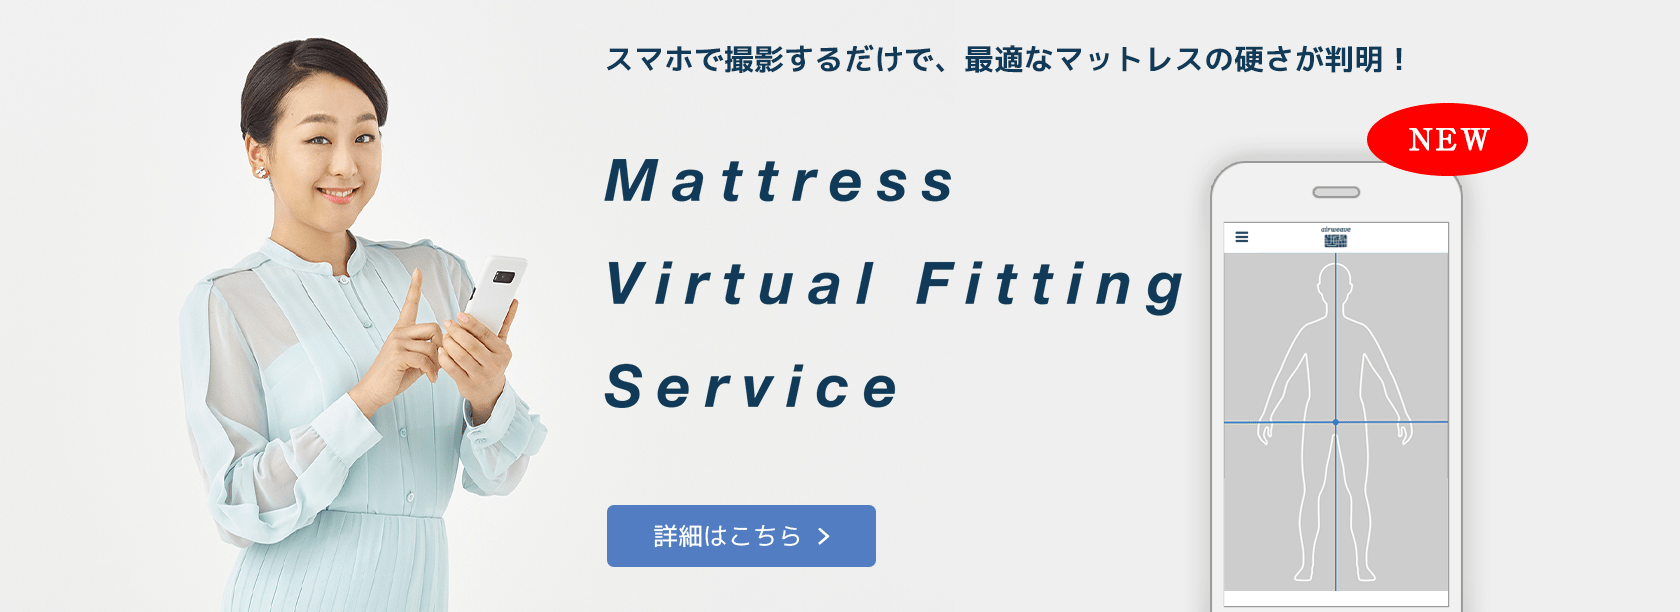 Mattress Virtual Fitting Service